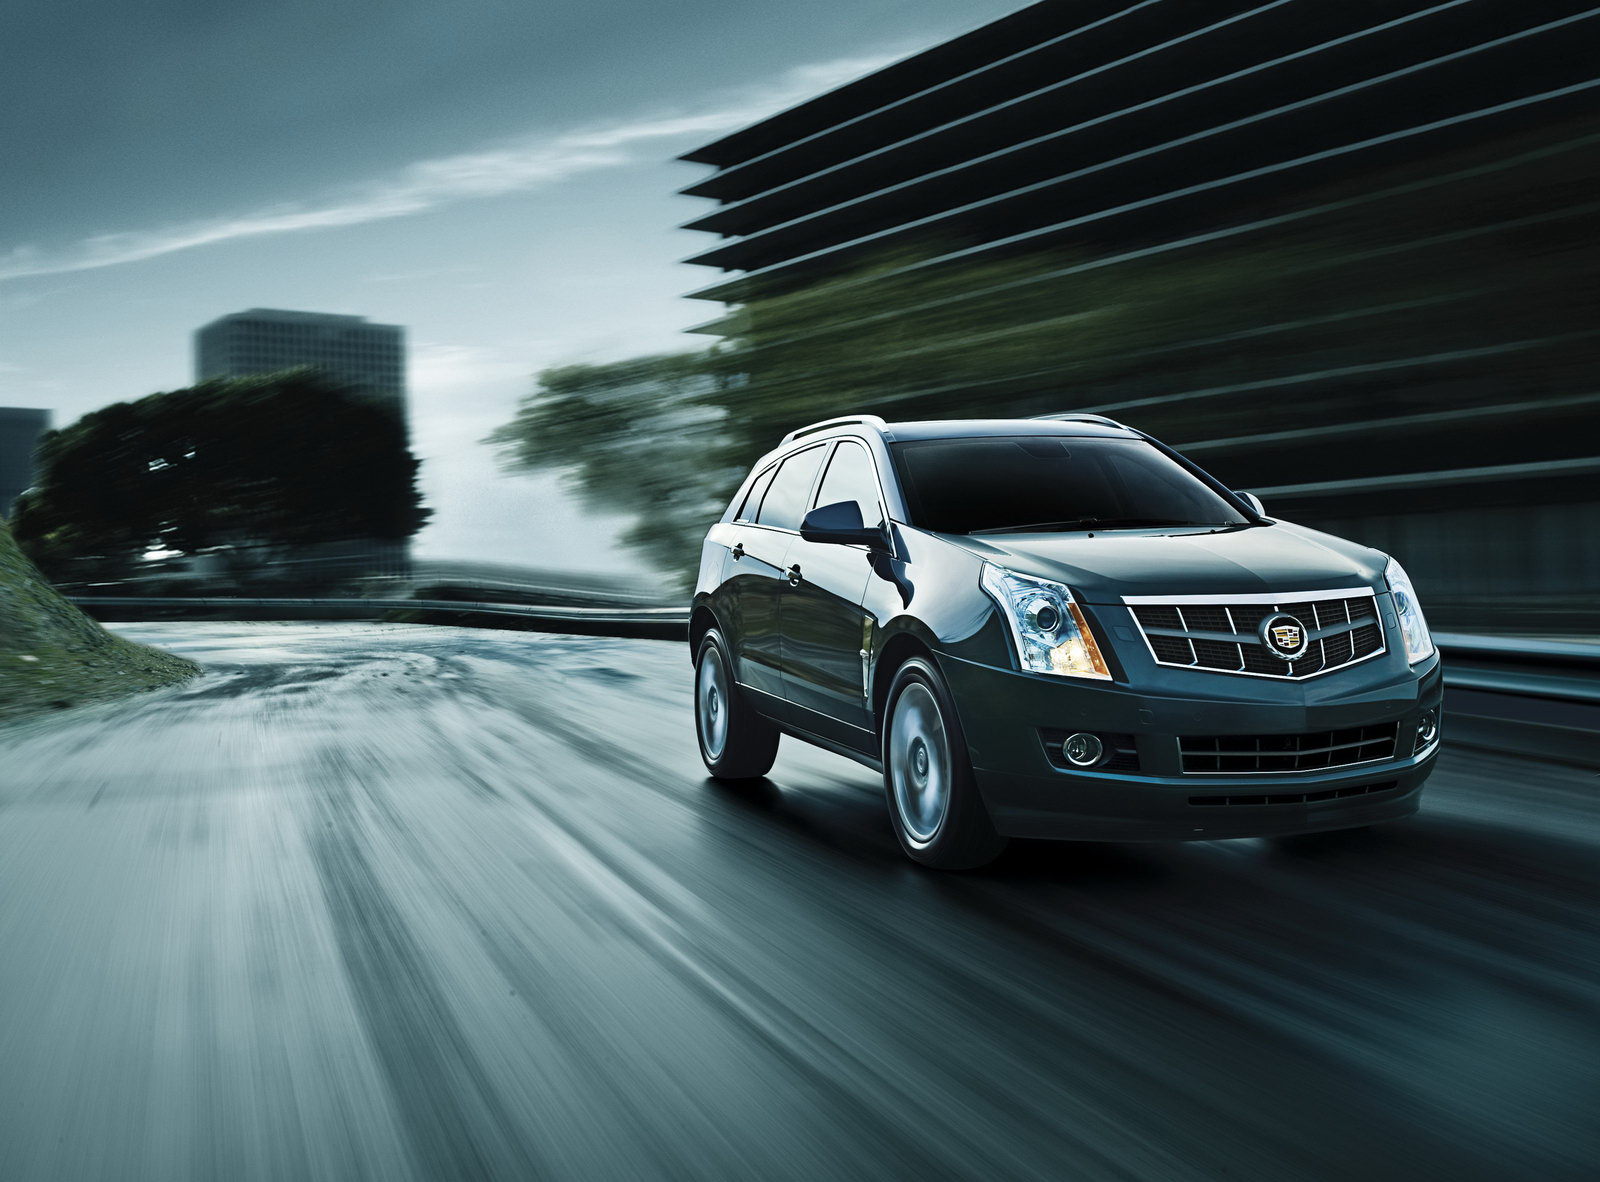 a 2012 Cadillac SRX Equipped with 3.6 liter V6 Engine and Infotainment Accessories